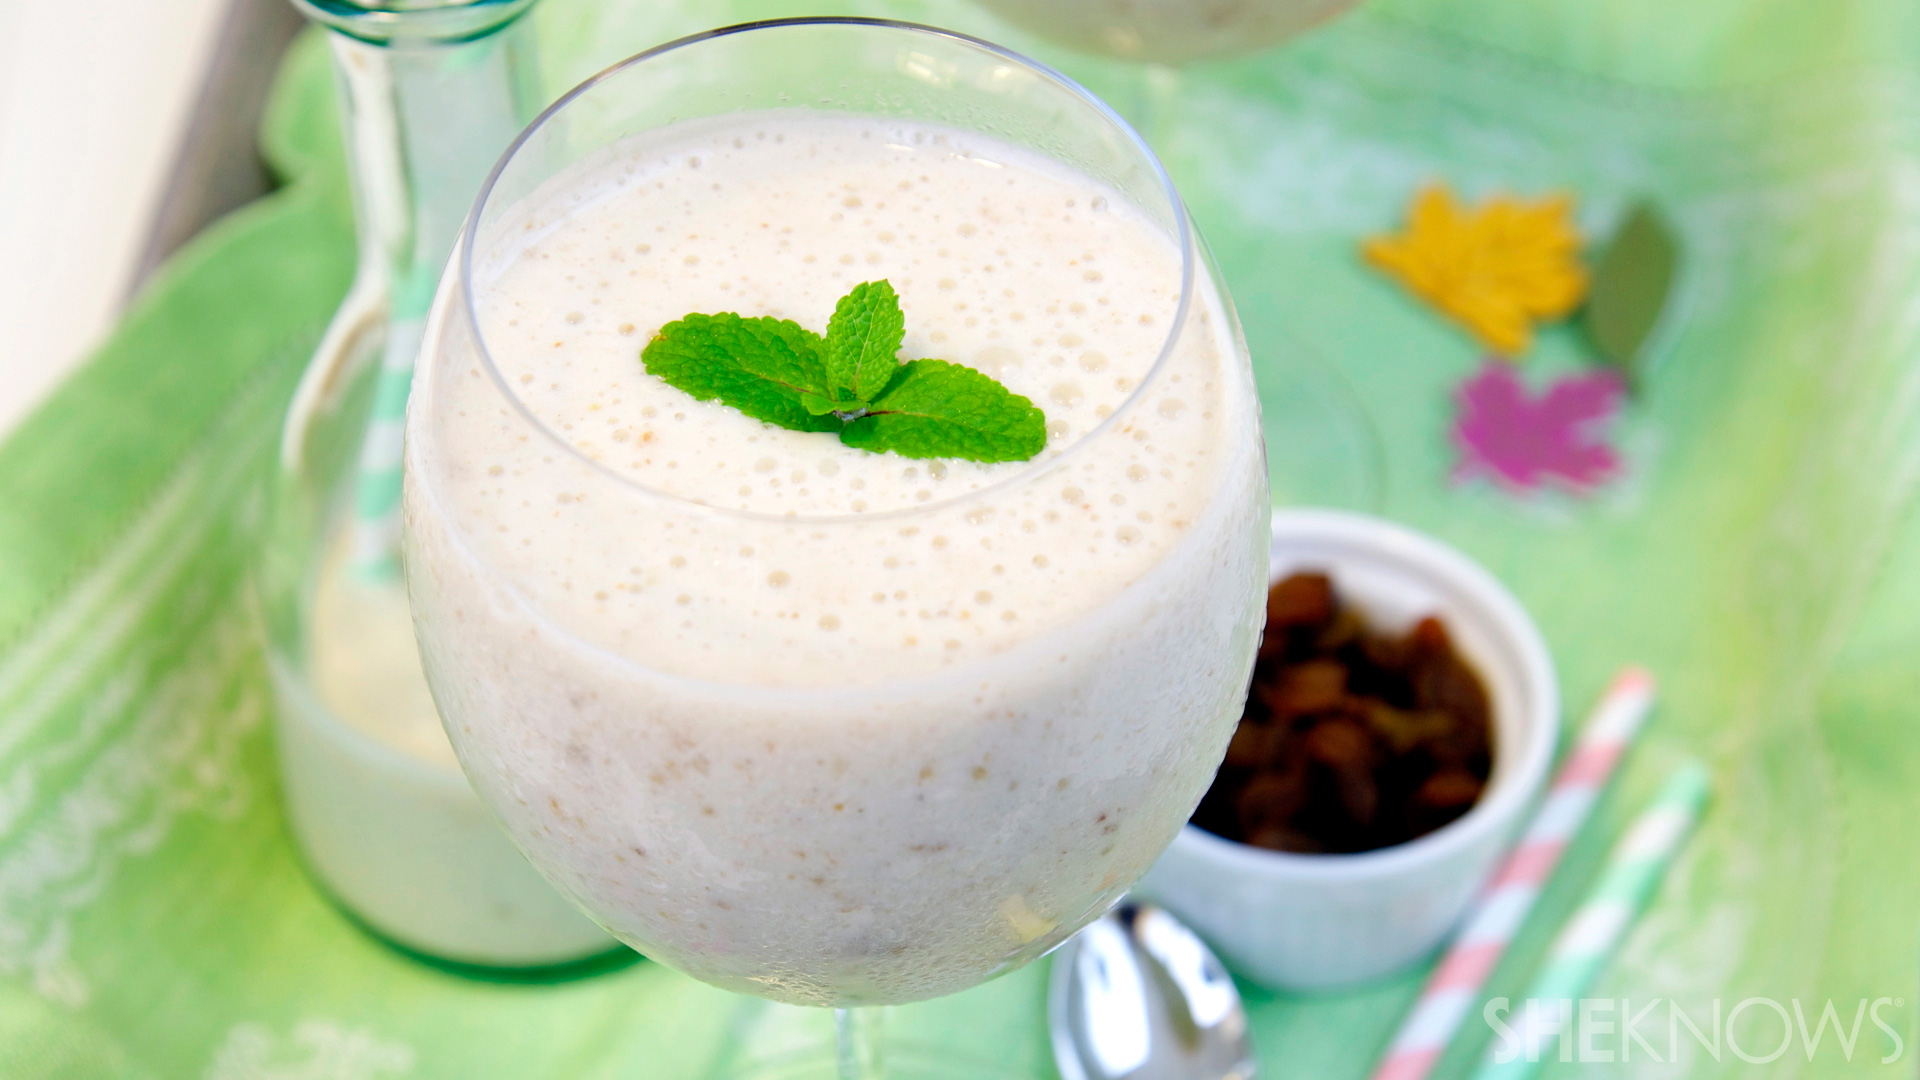 How about a spiked smoothie?